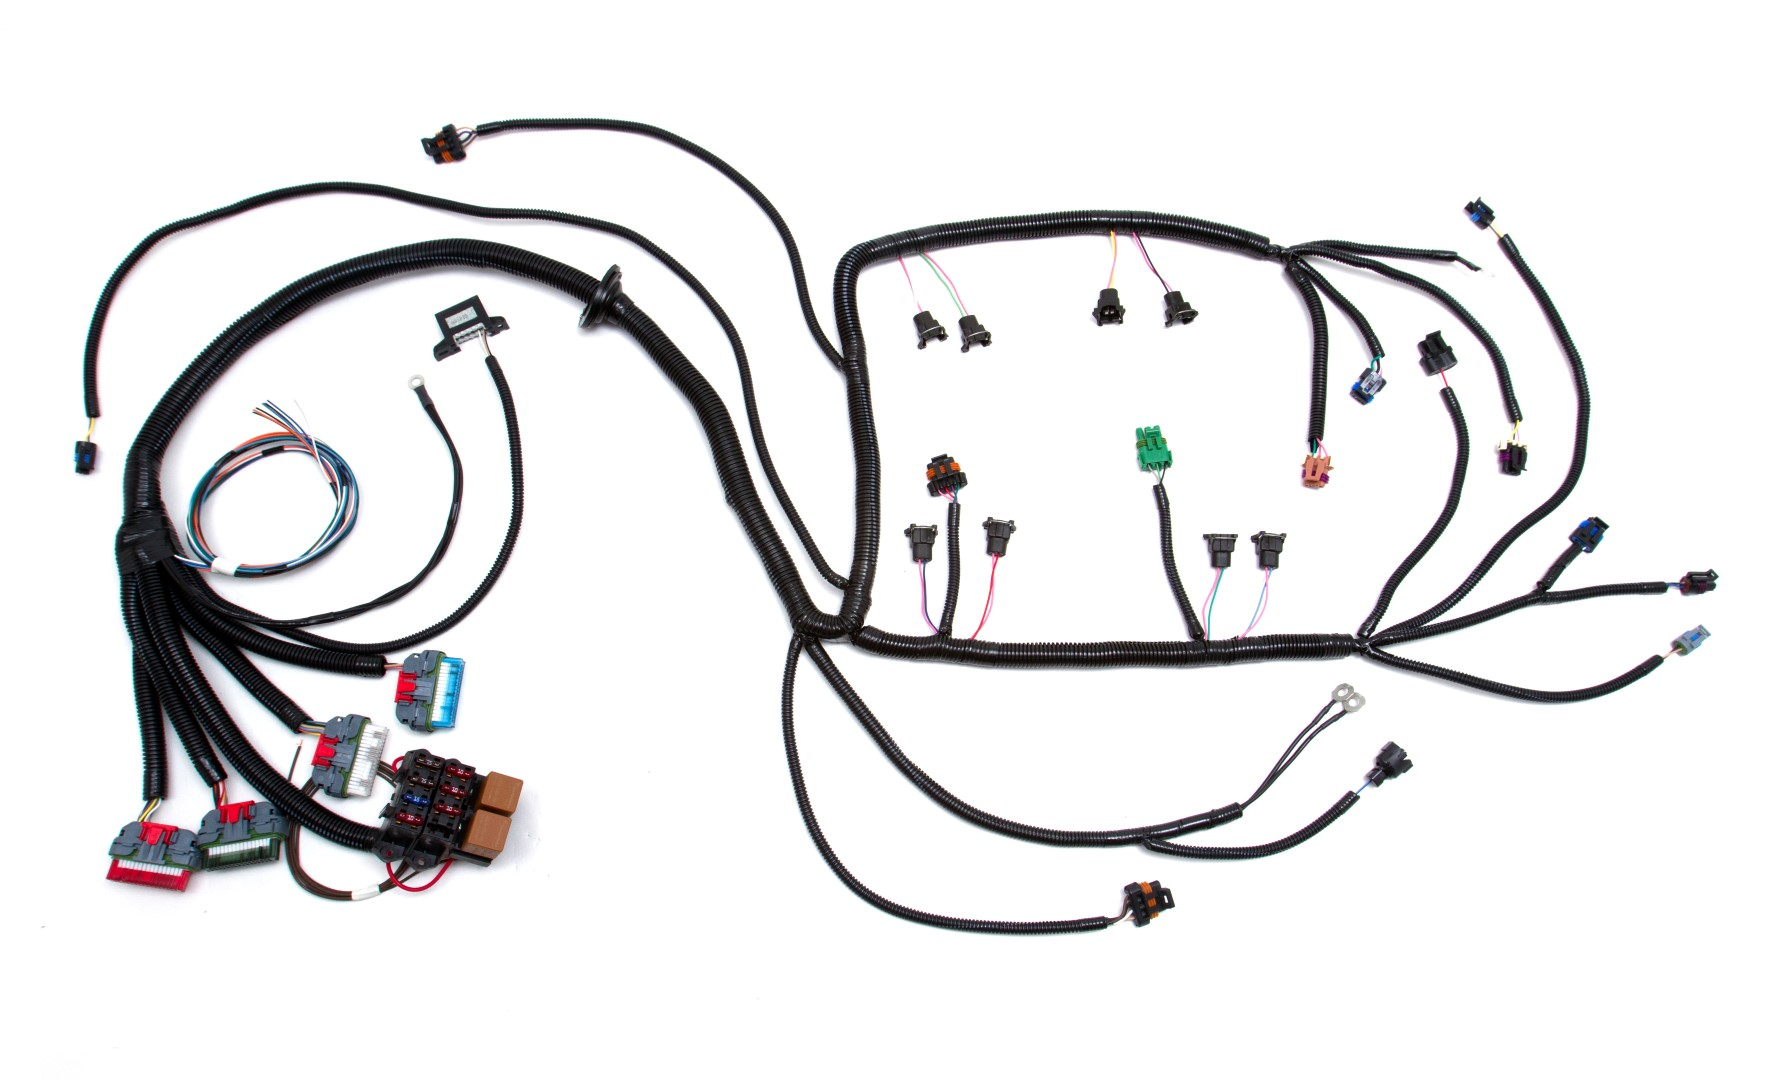 Standalone Wiring Harness Lt1 700r4 For Sale Opinions About Fuse Box Psi Lt4 W T56 Th350 Th400 Rh Psiconversion Com Ls1 In Diagram